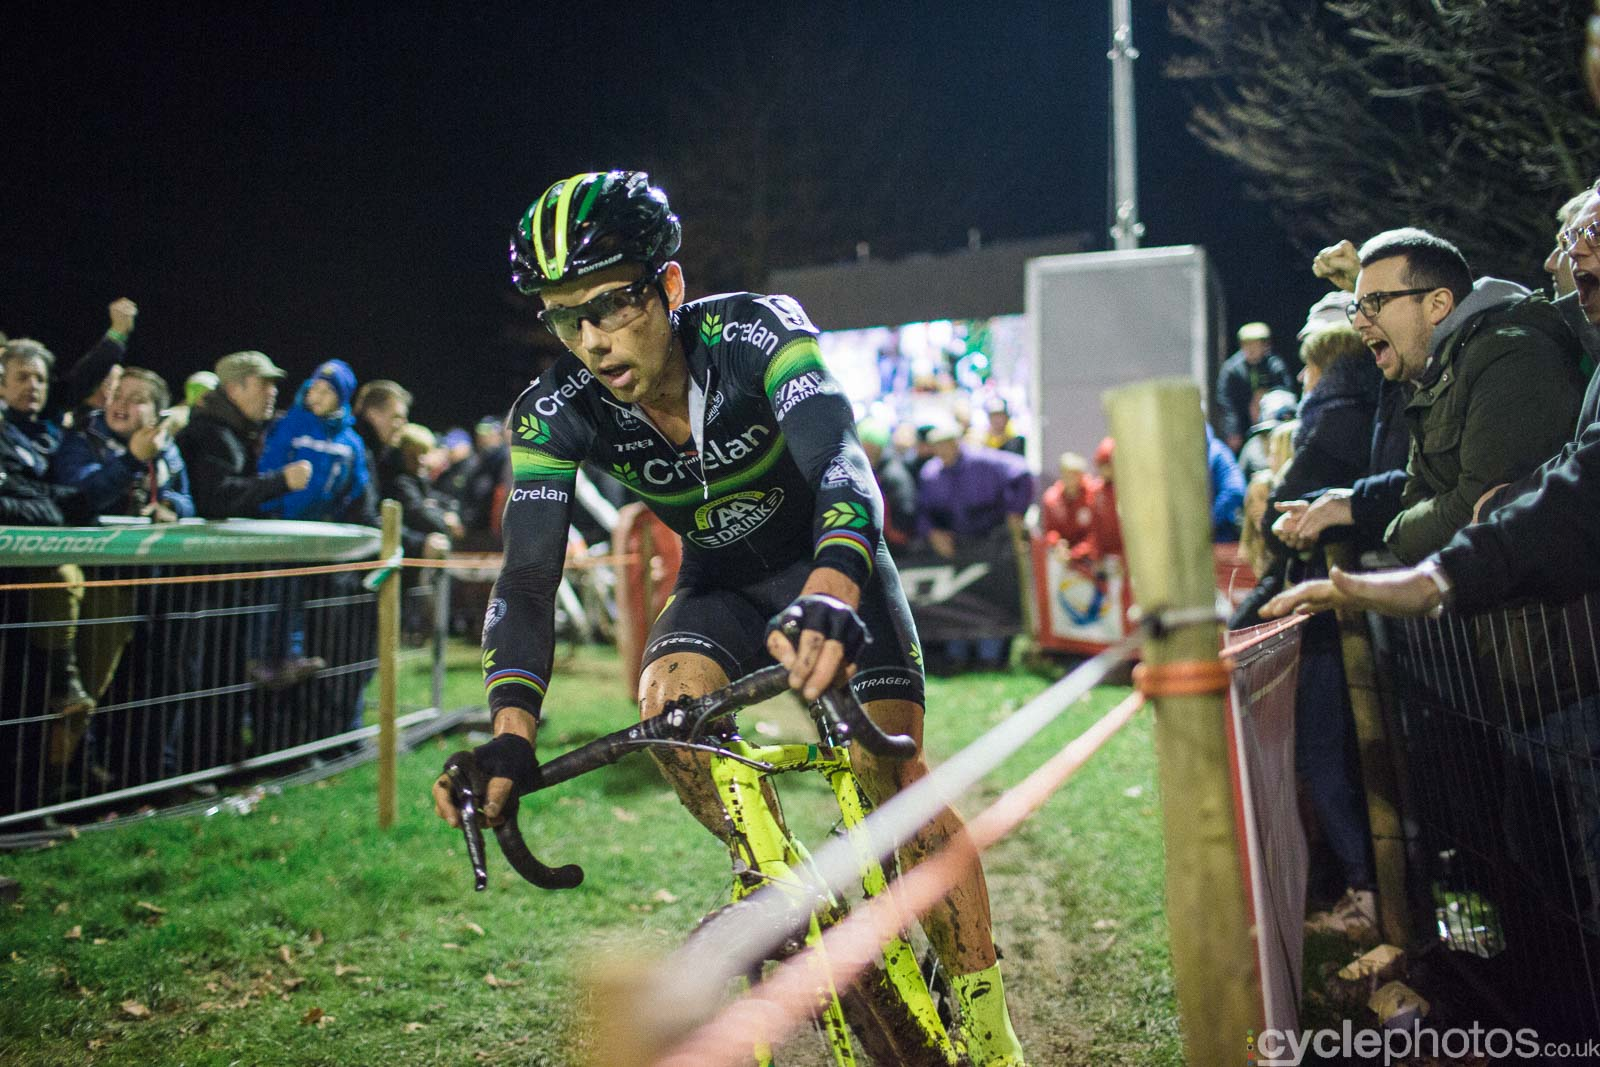 2015-cyclephotos-cyclocross-diegem-181009-sven-nys